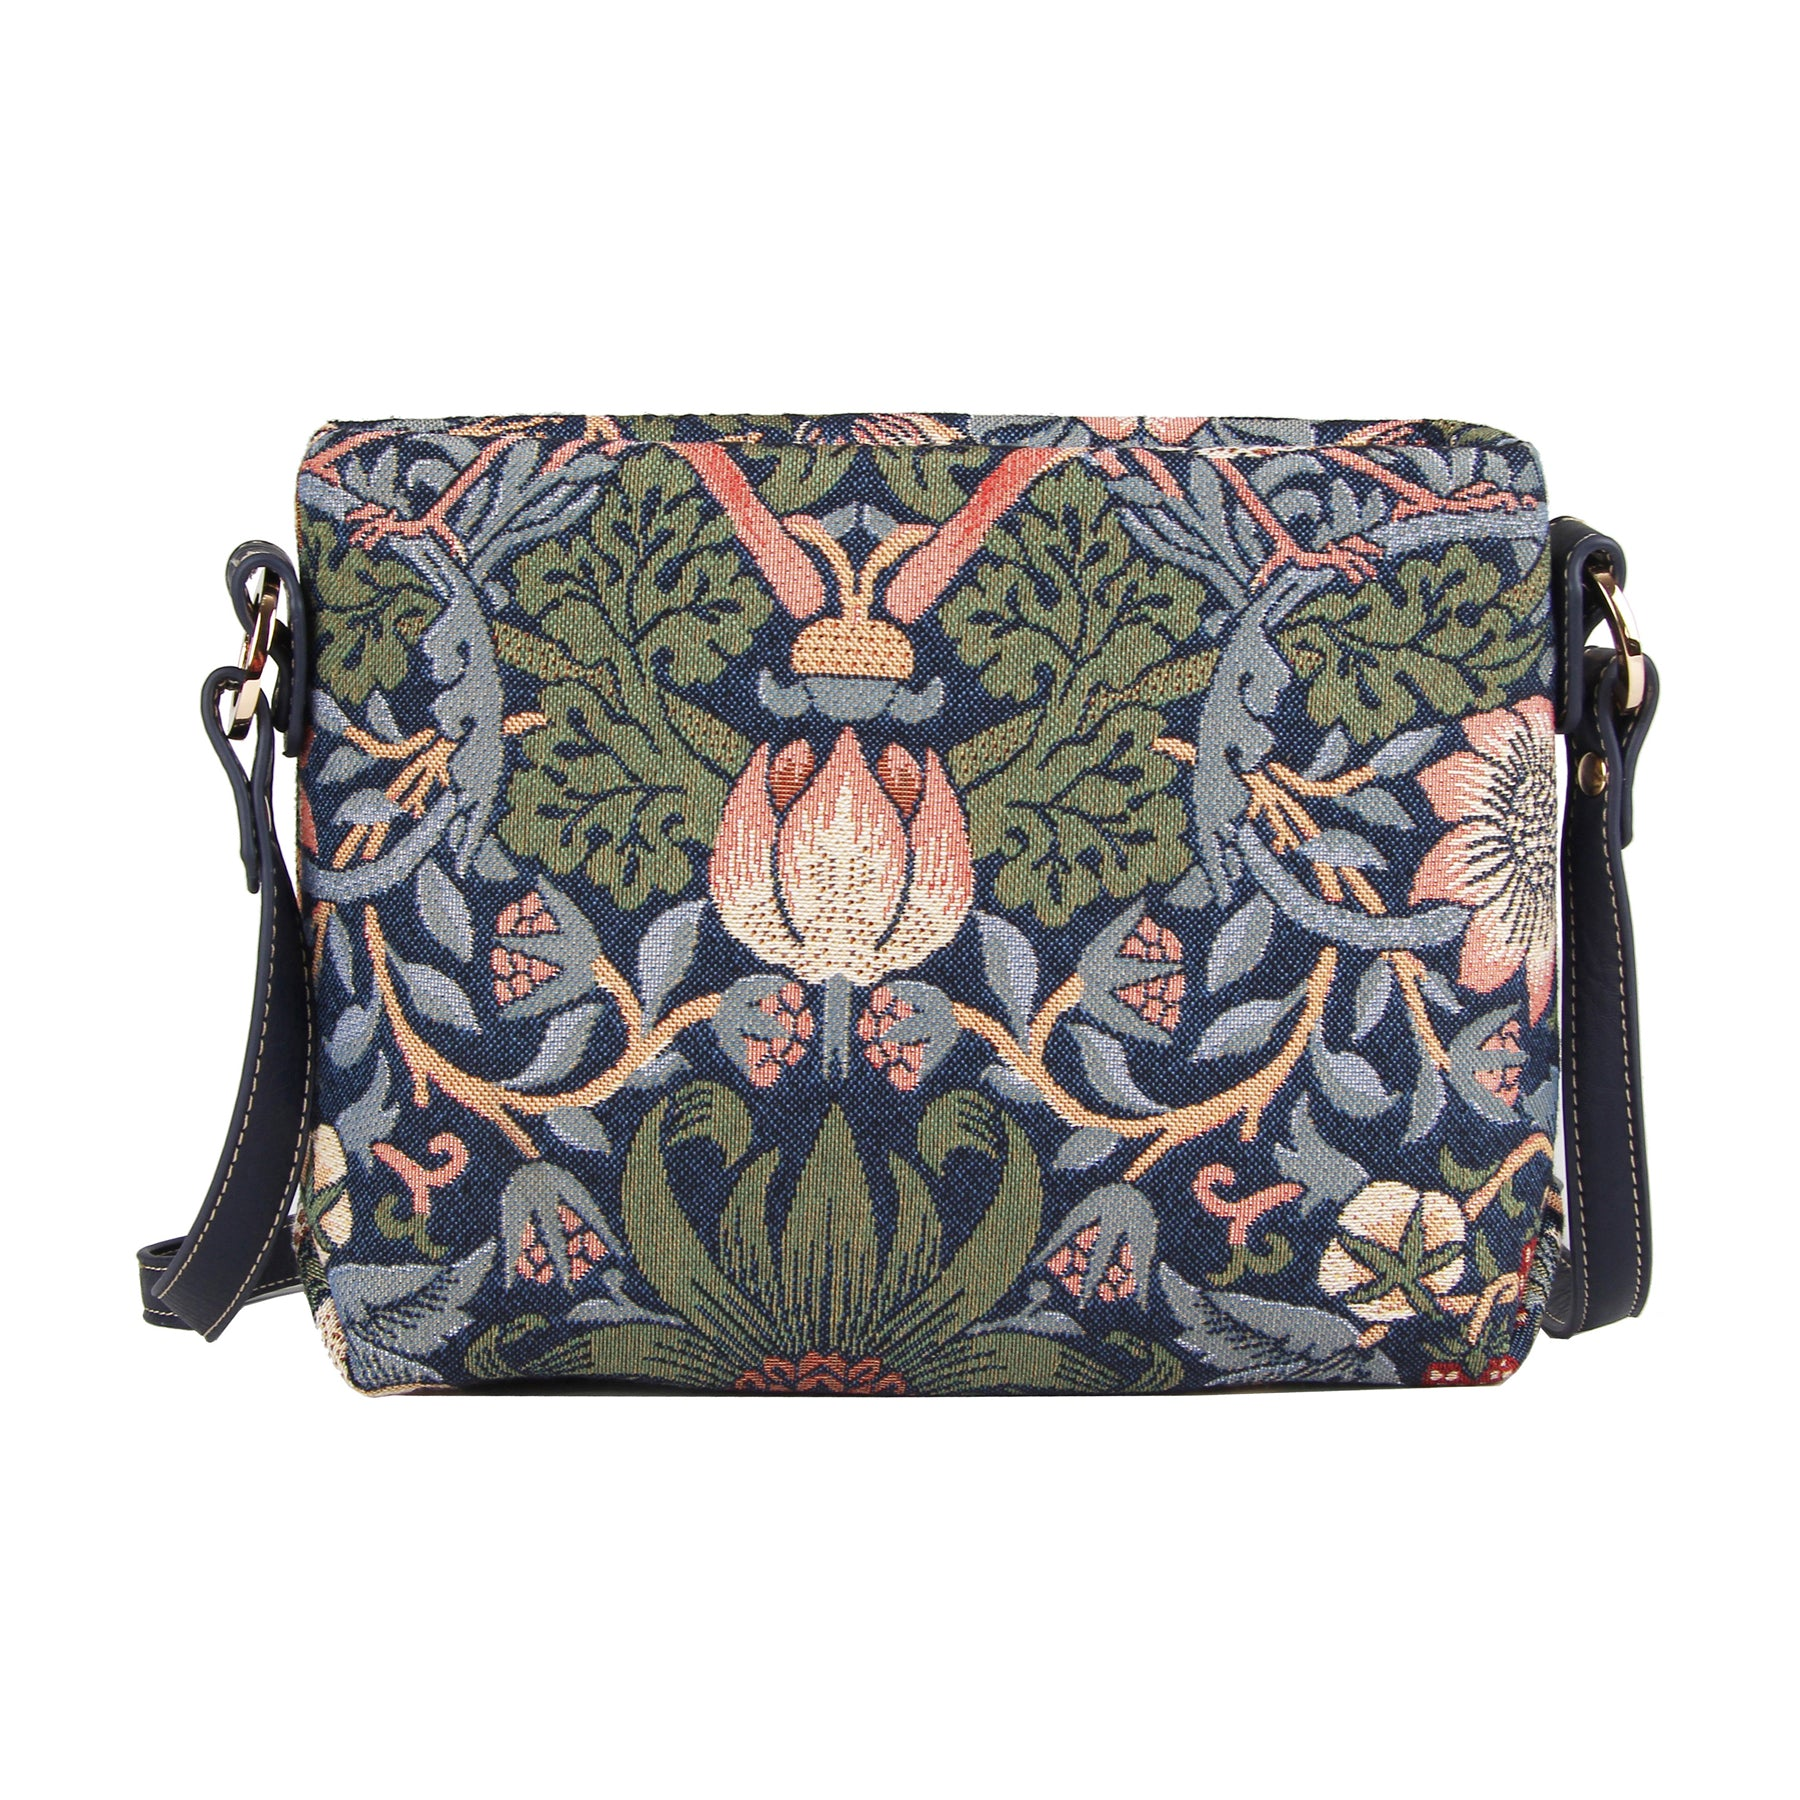 Strawberry Thief Crossbody Bag in Blue